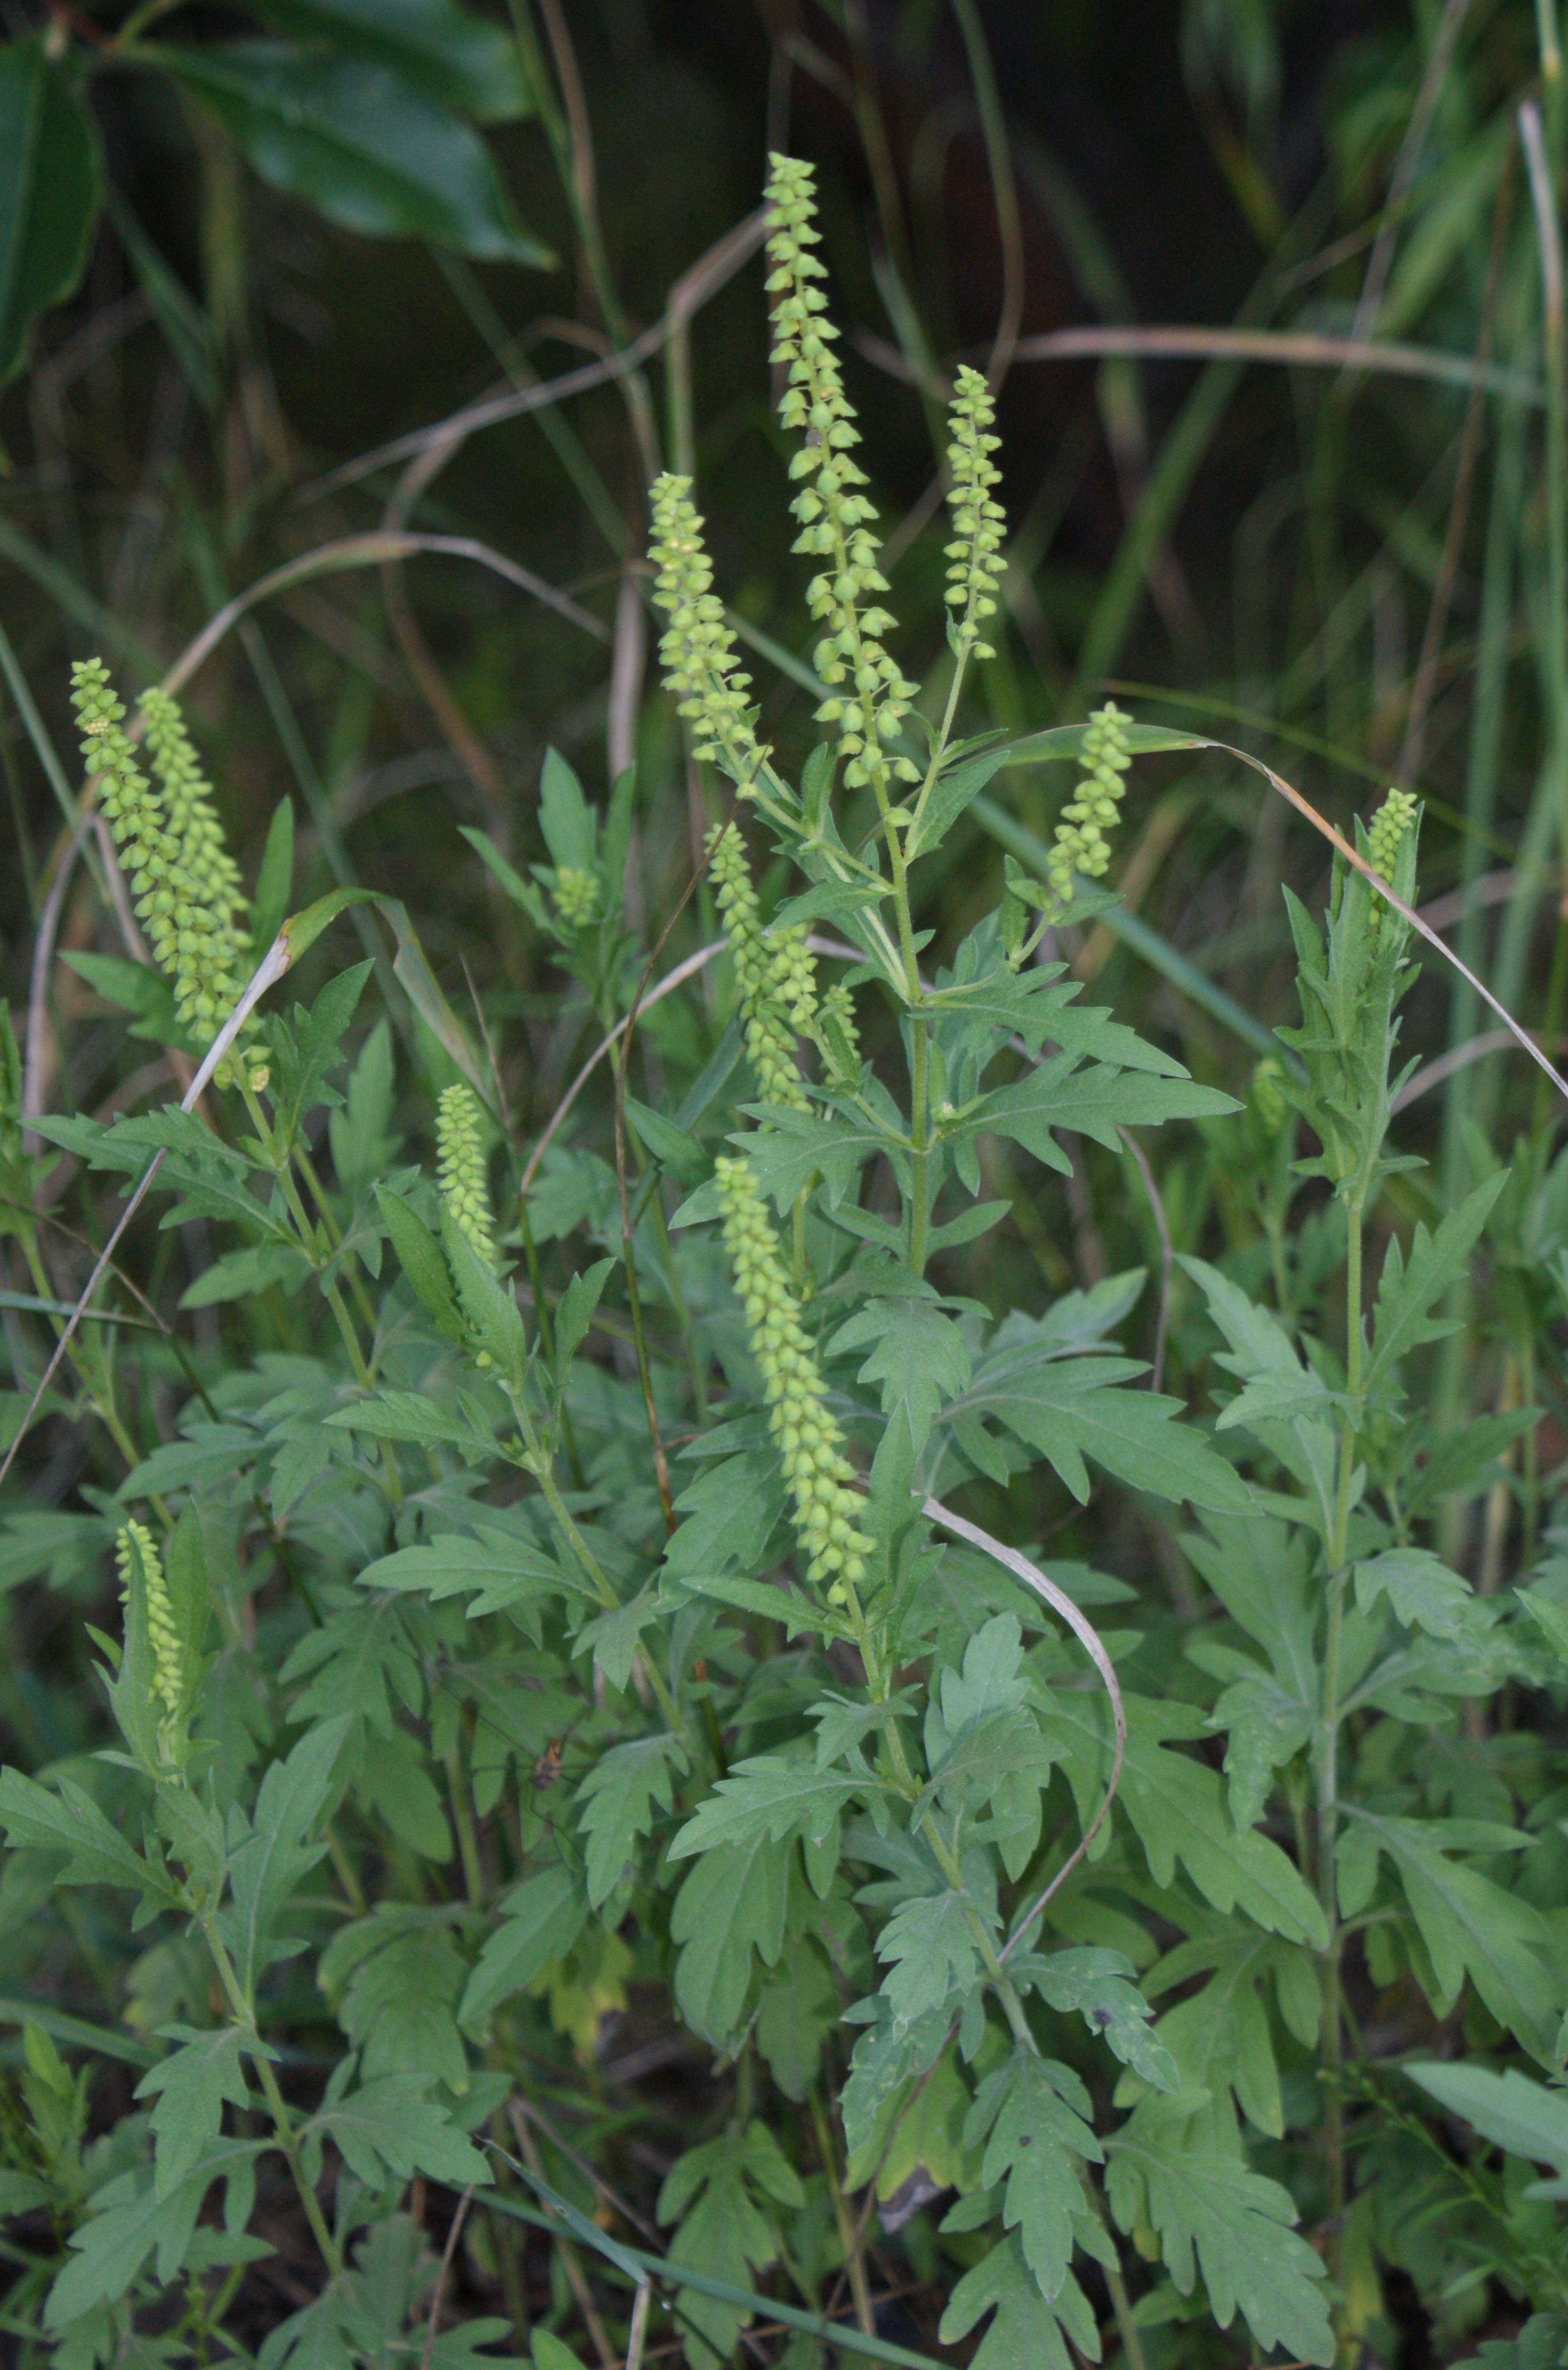 Western ragweed, Ambrosia psilostachya, invasive plant, north american weed, invasive plants in india, alien plants